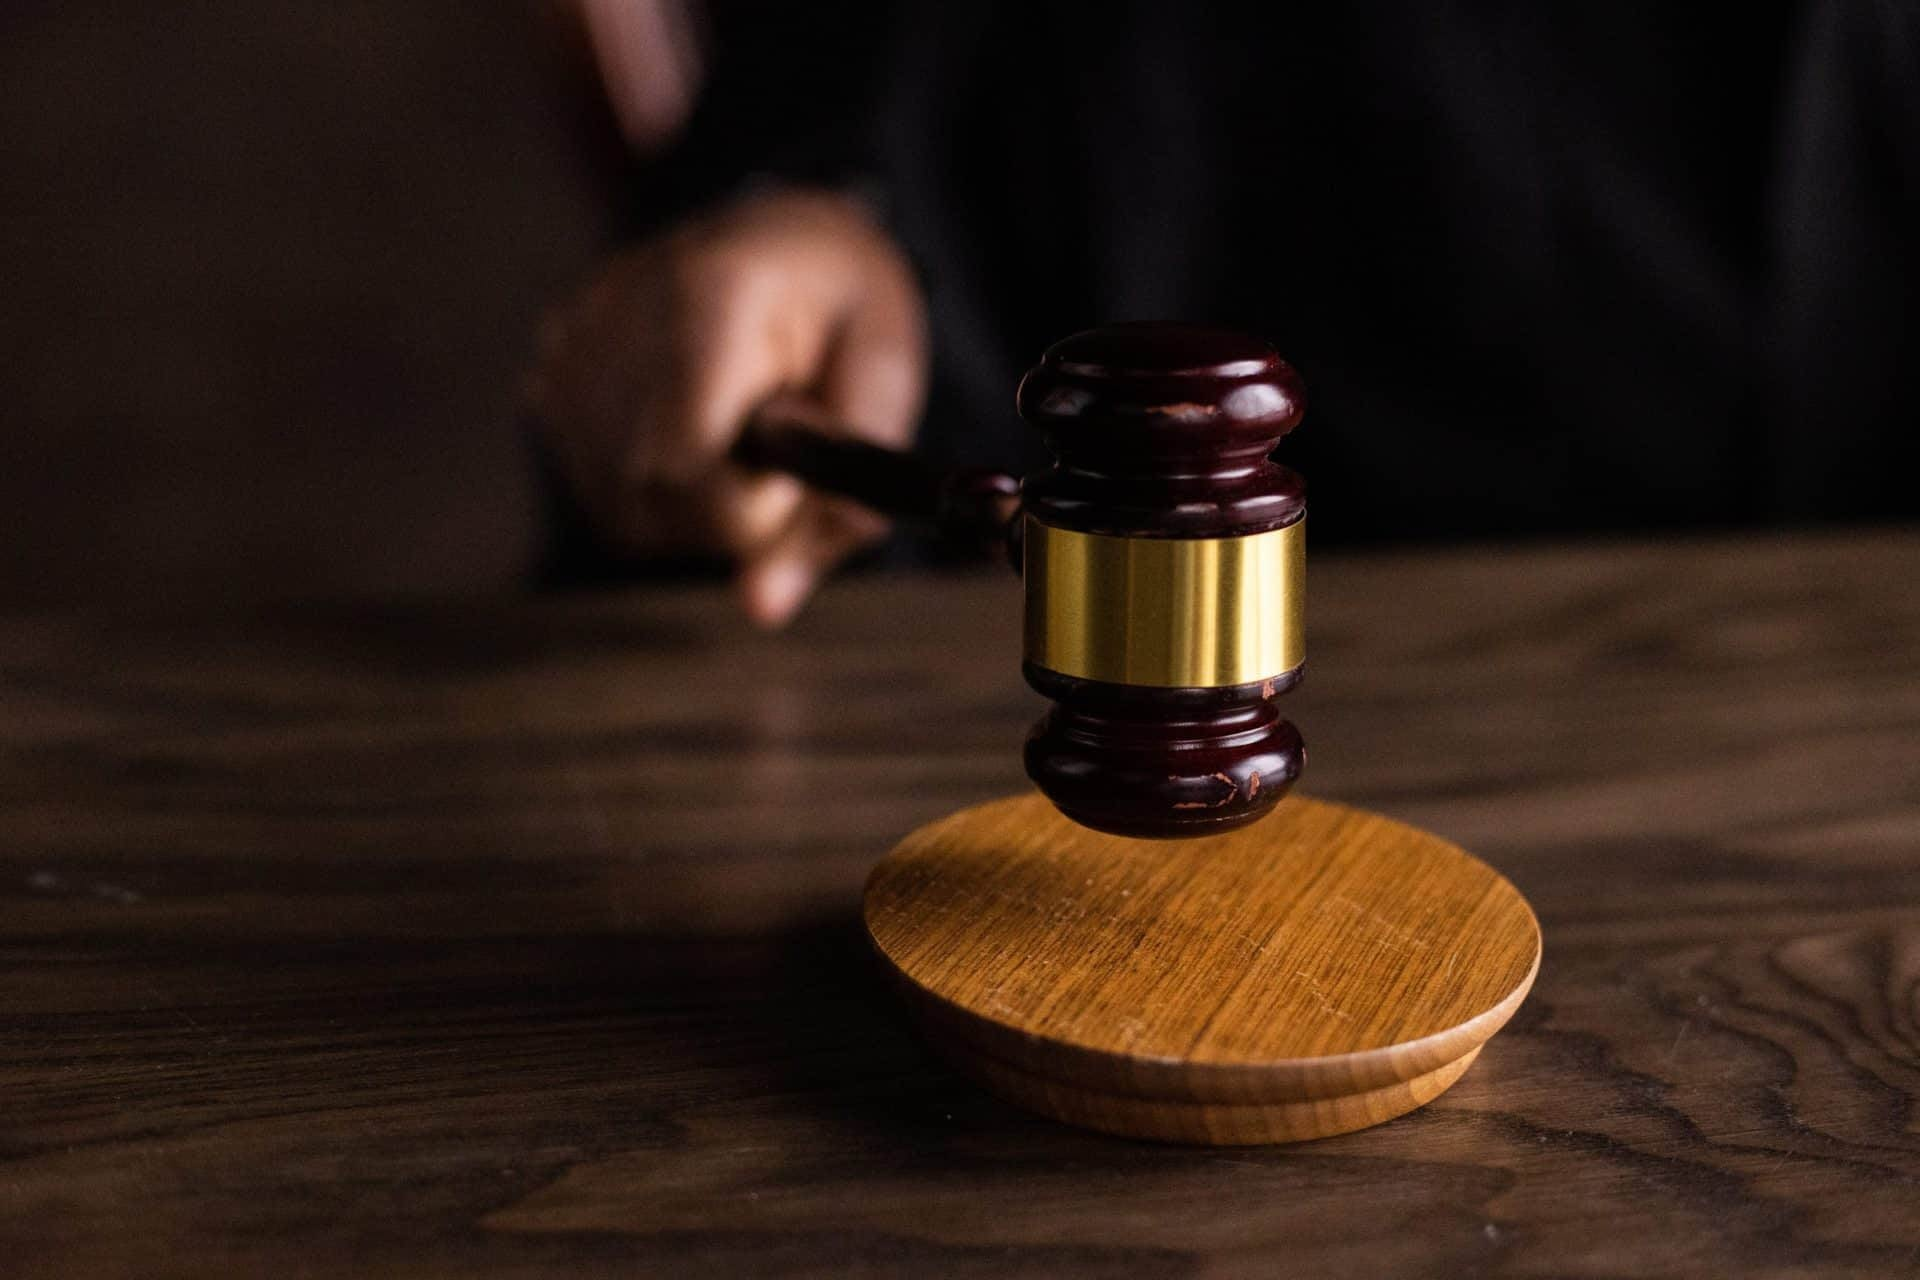 close up of a gavel being used in court